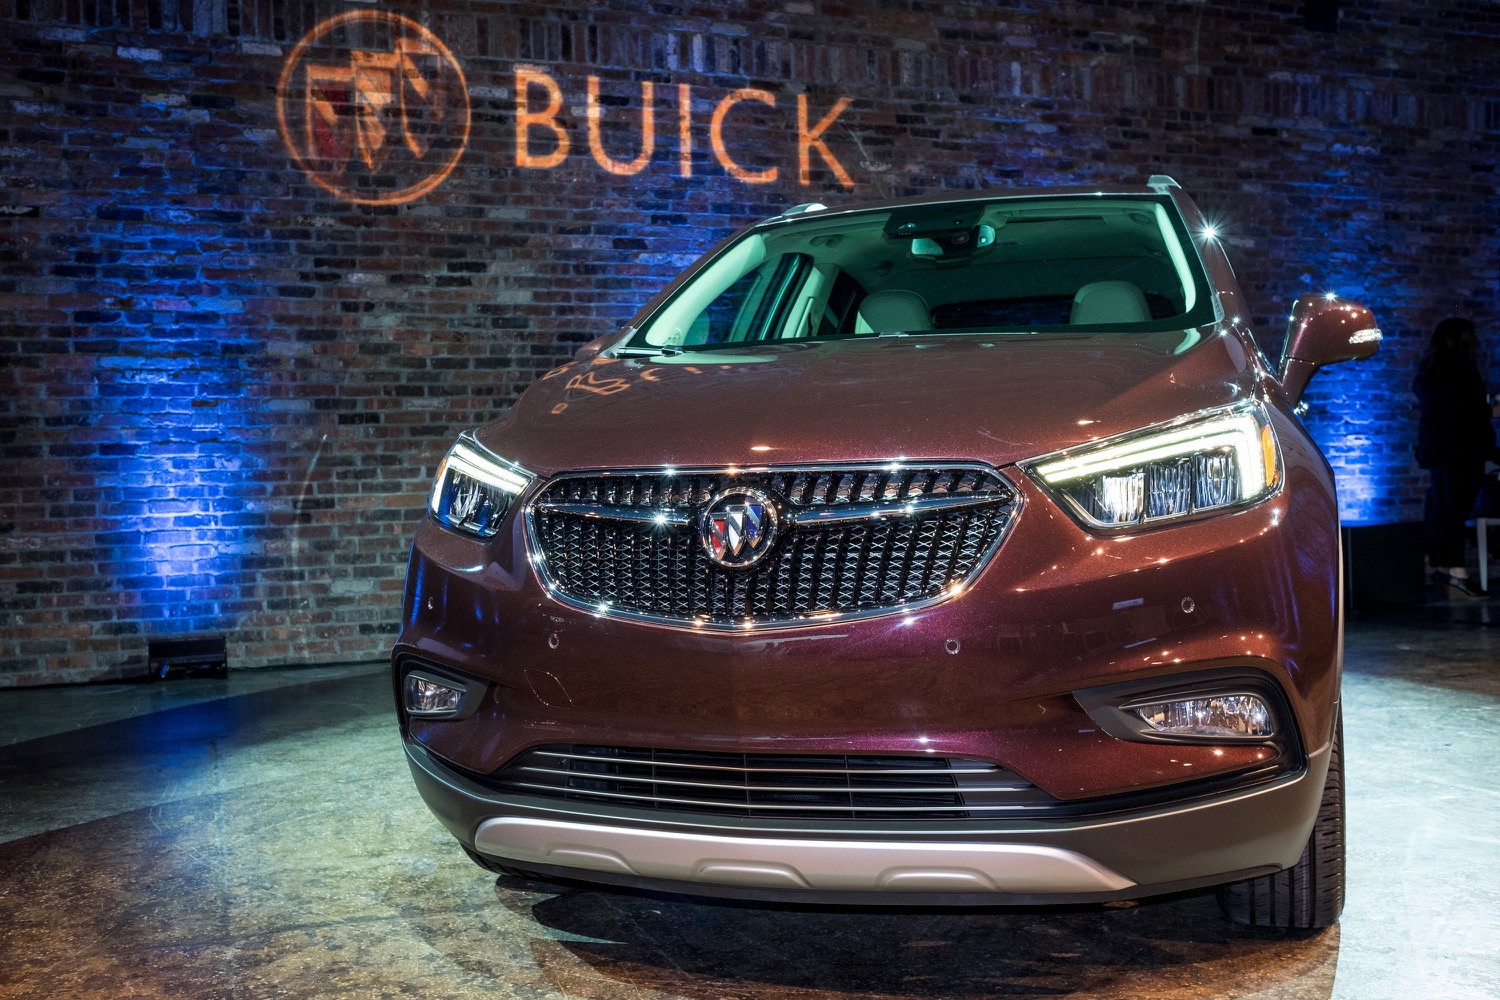 Buick Encore Is A Consumer Reports Best Used Car Under $20K New 2022 Buick Encore Cost, Build And Price, Engine